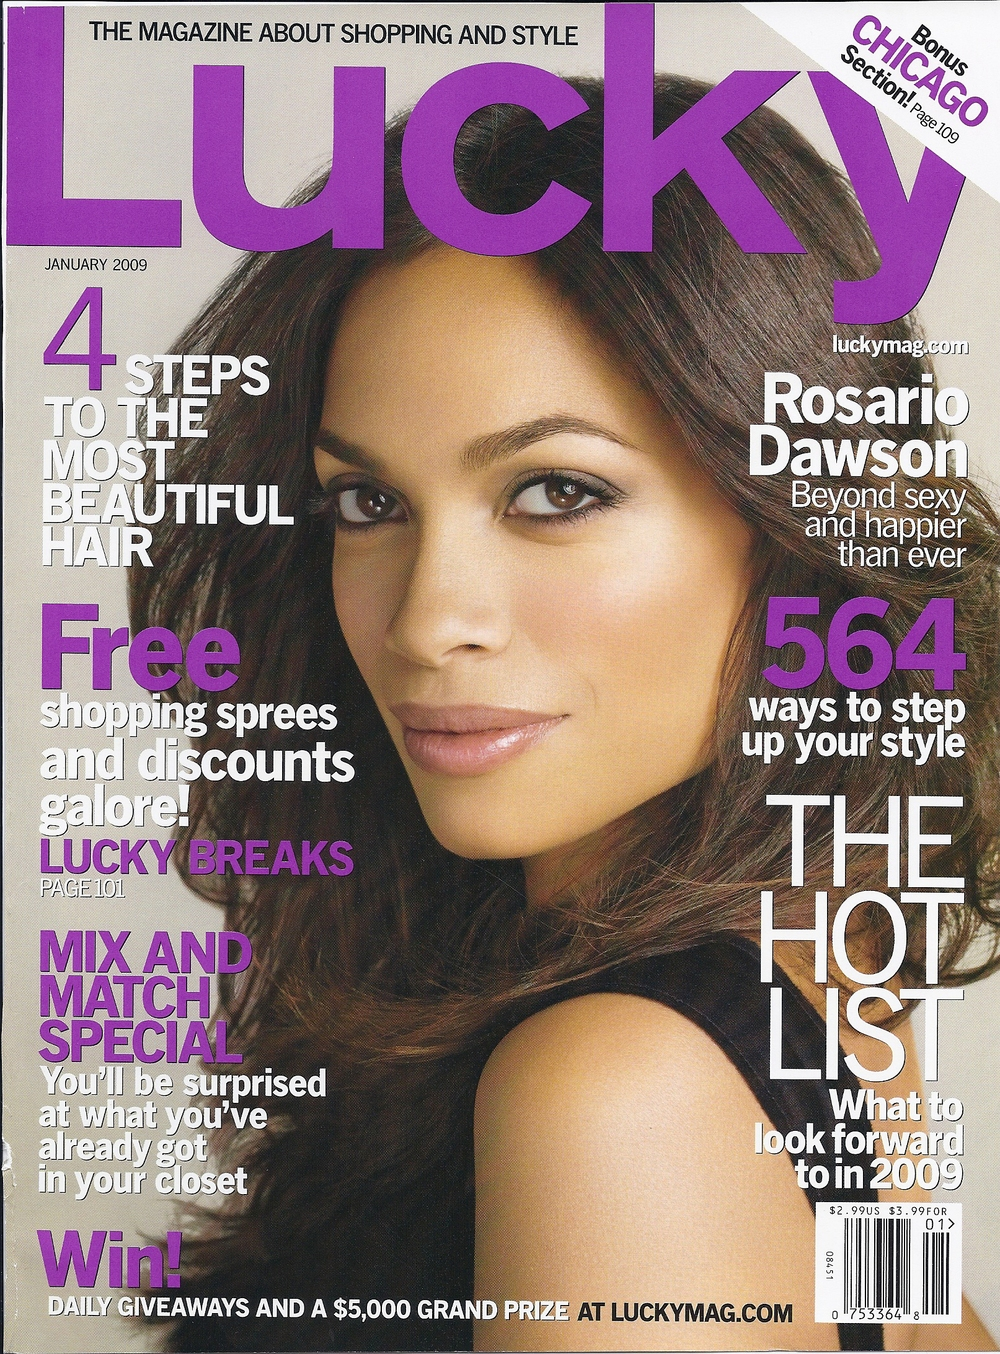 lucky magazine 0109 cover.jpg